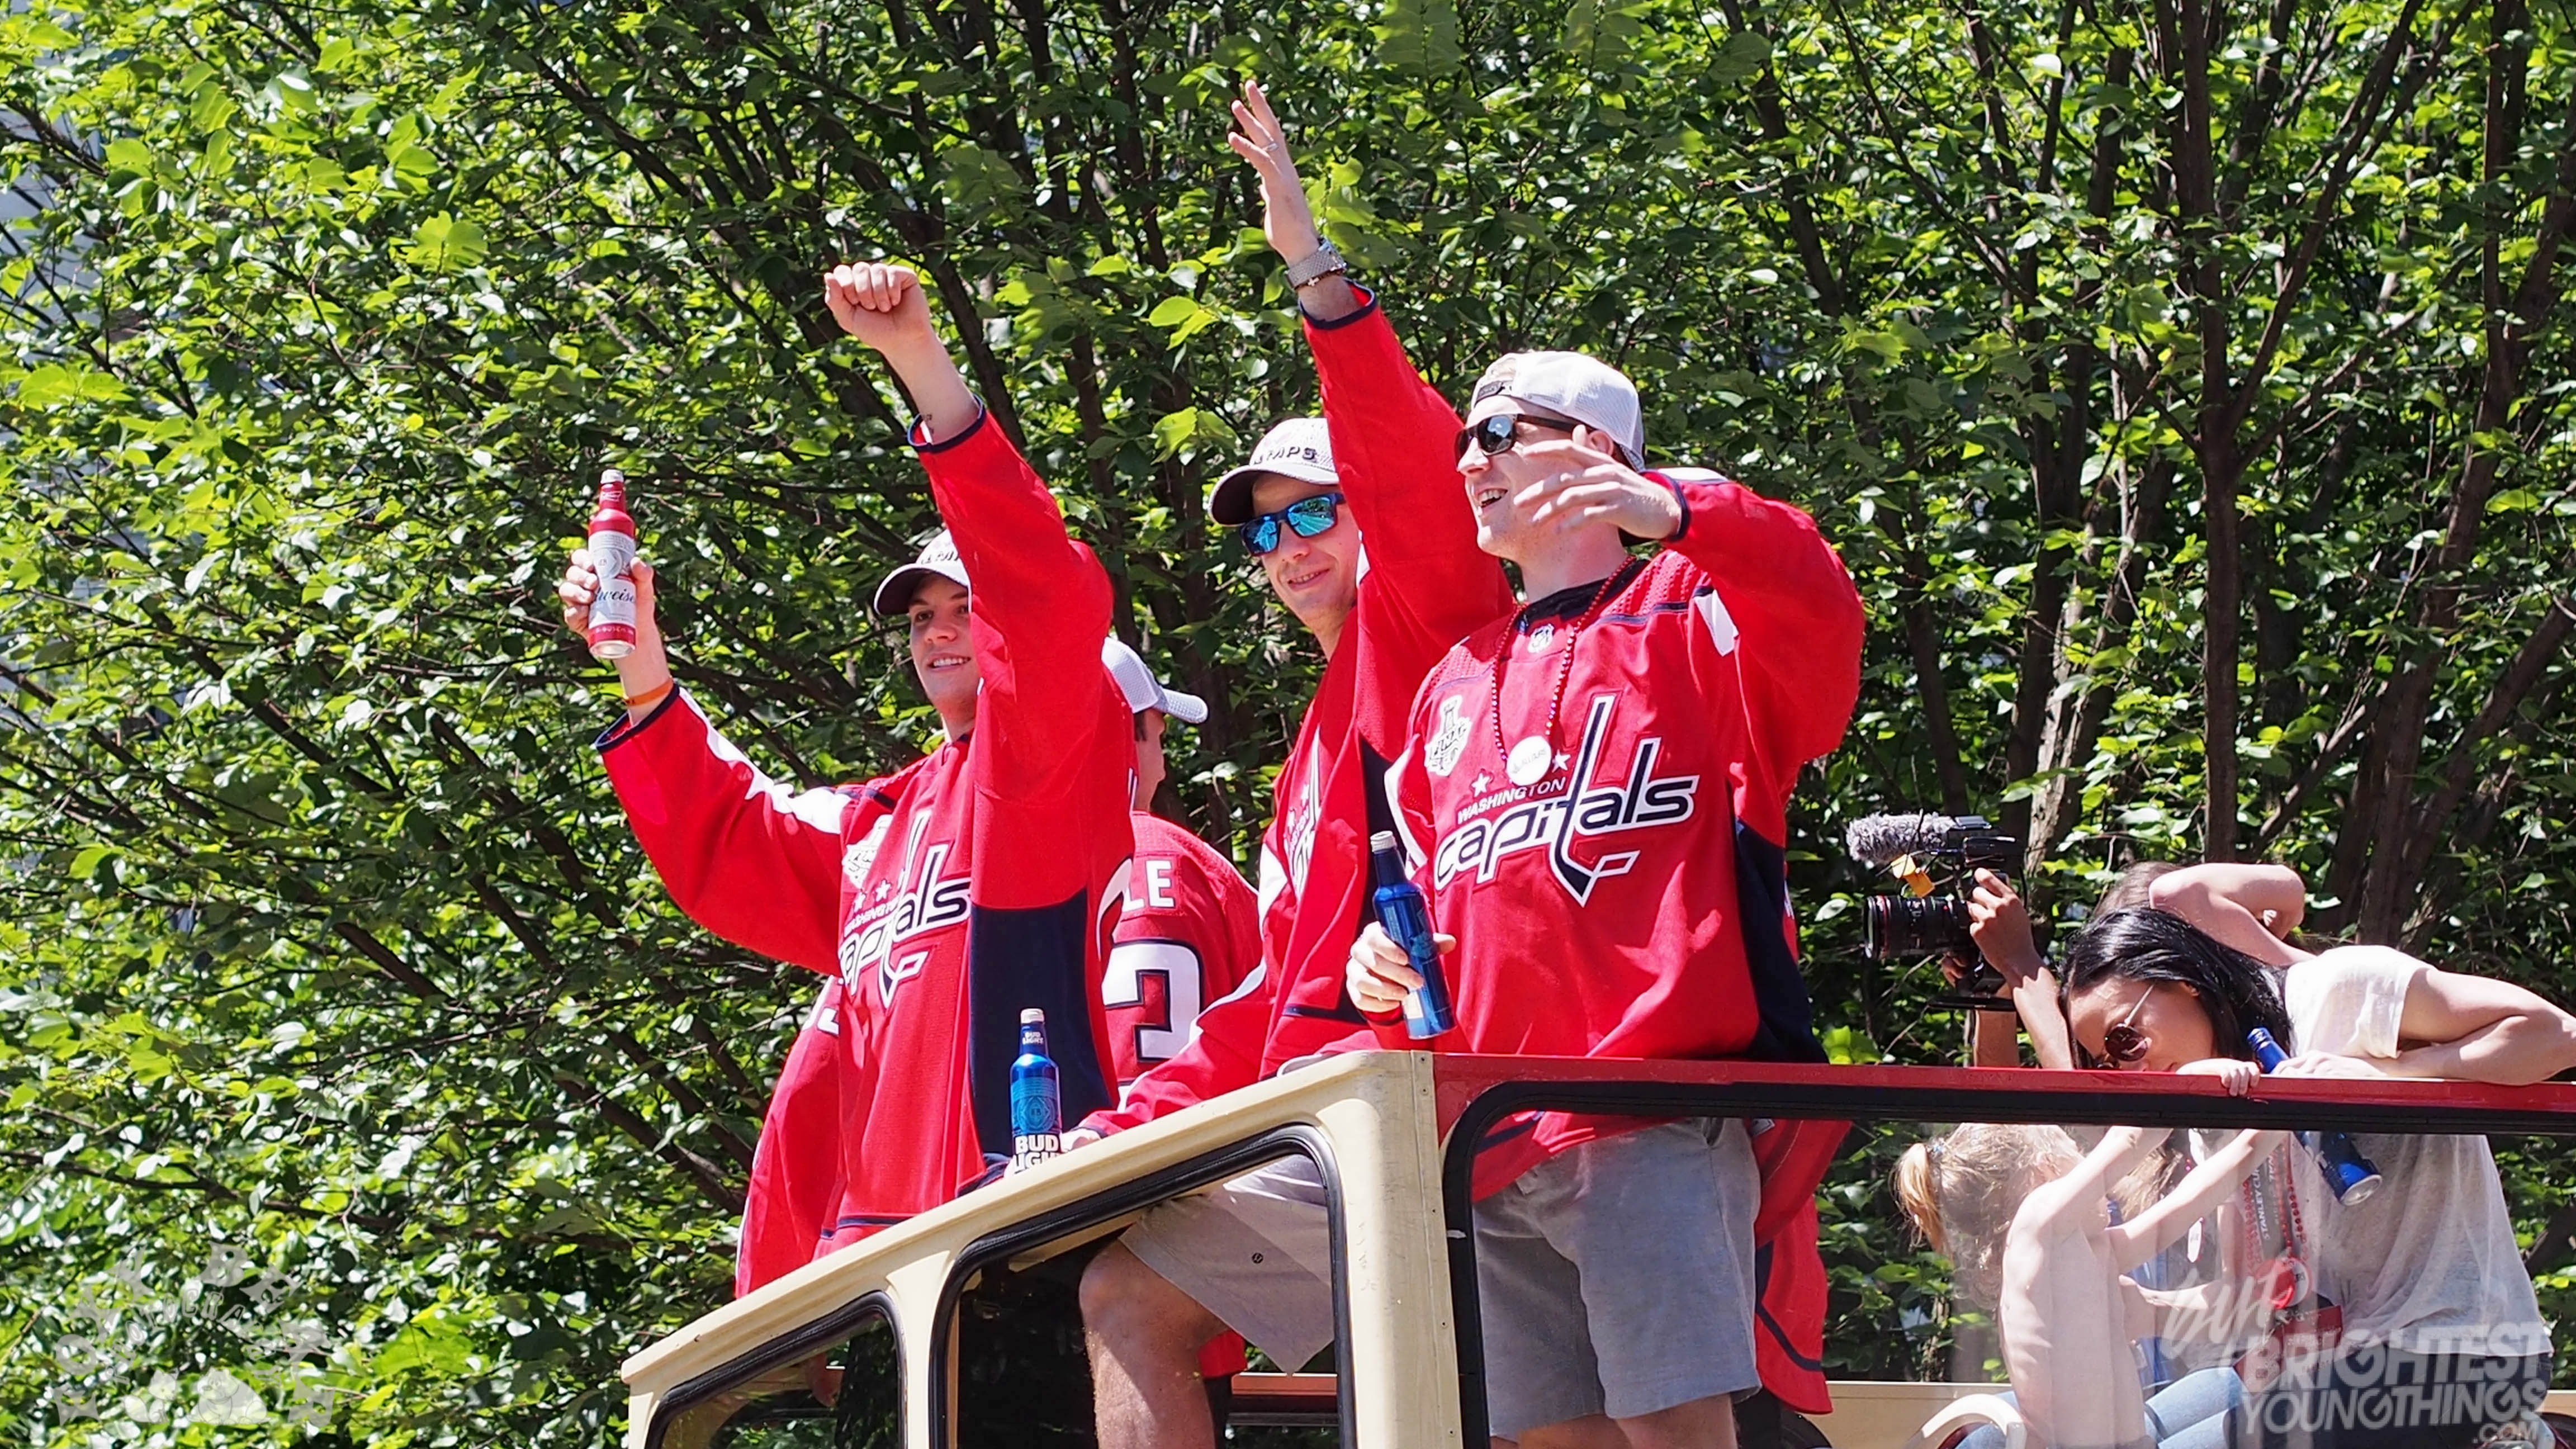 688b42127fa ... from yesterday s Washington Capitals Stanley Cup Championship Parade by  Foxy Bear Photography. P1010260 P1010089 ...